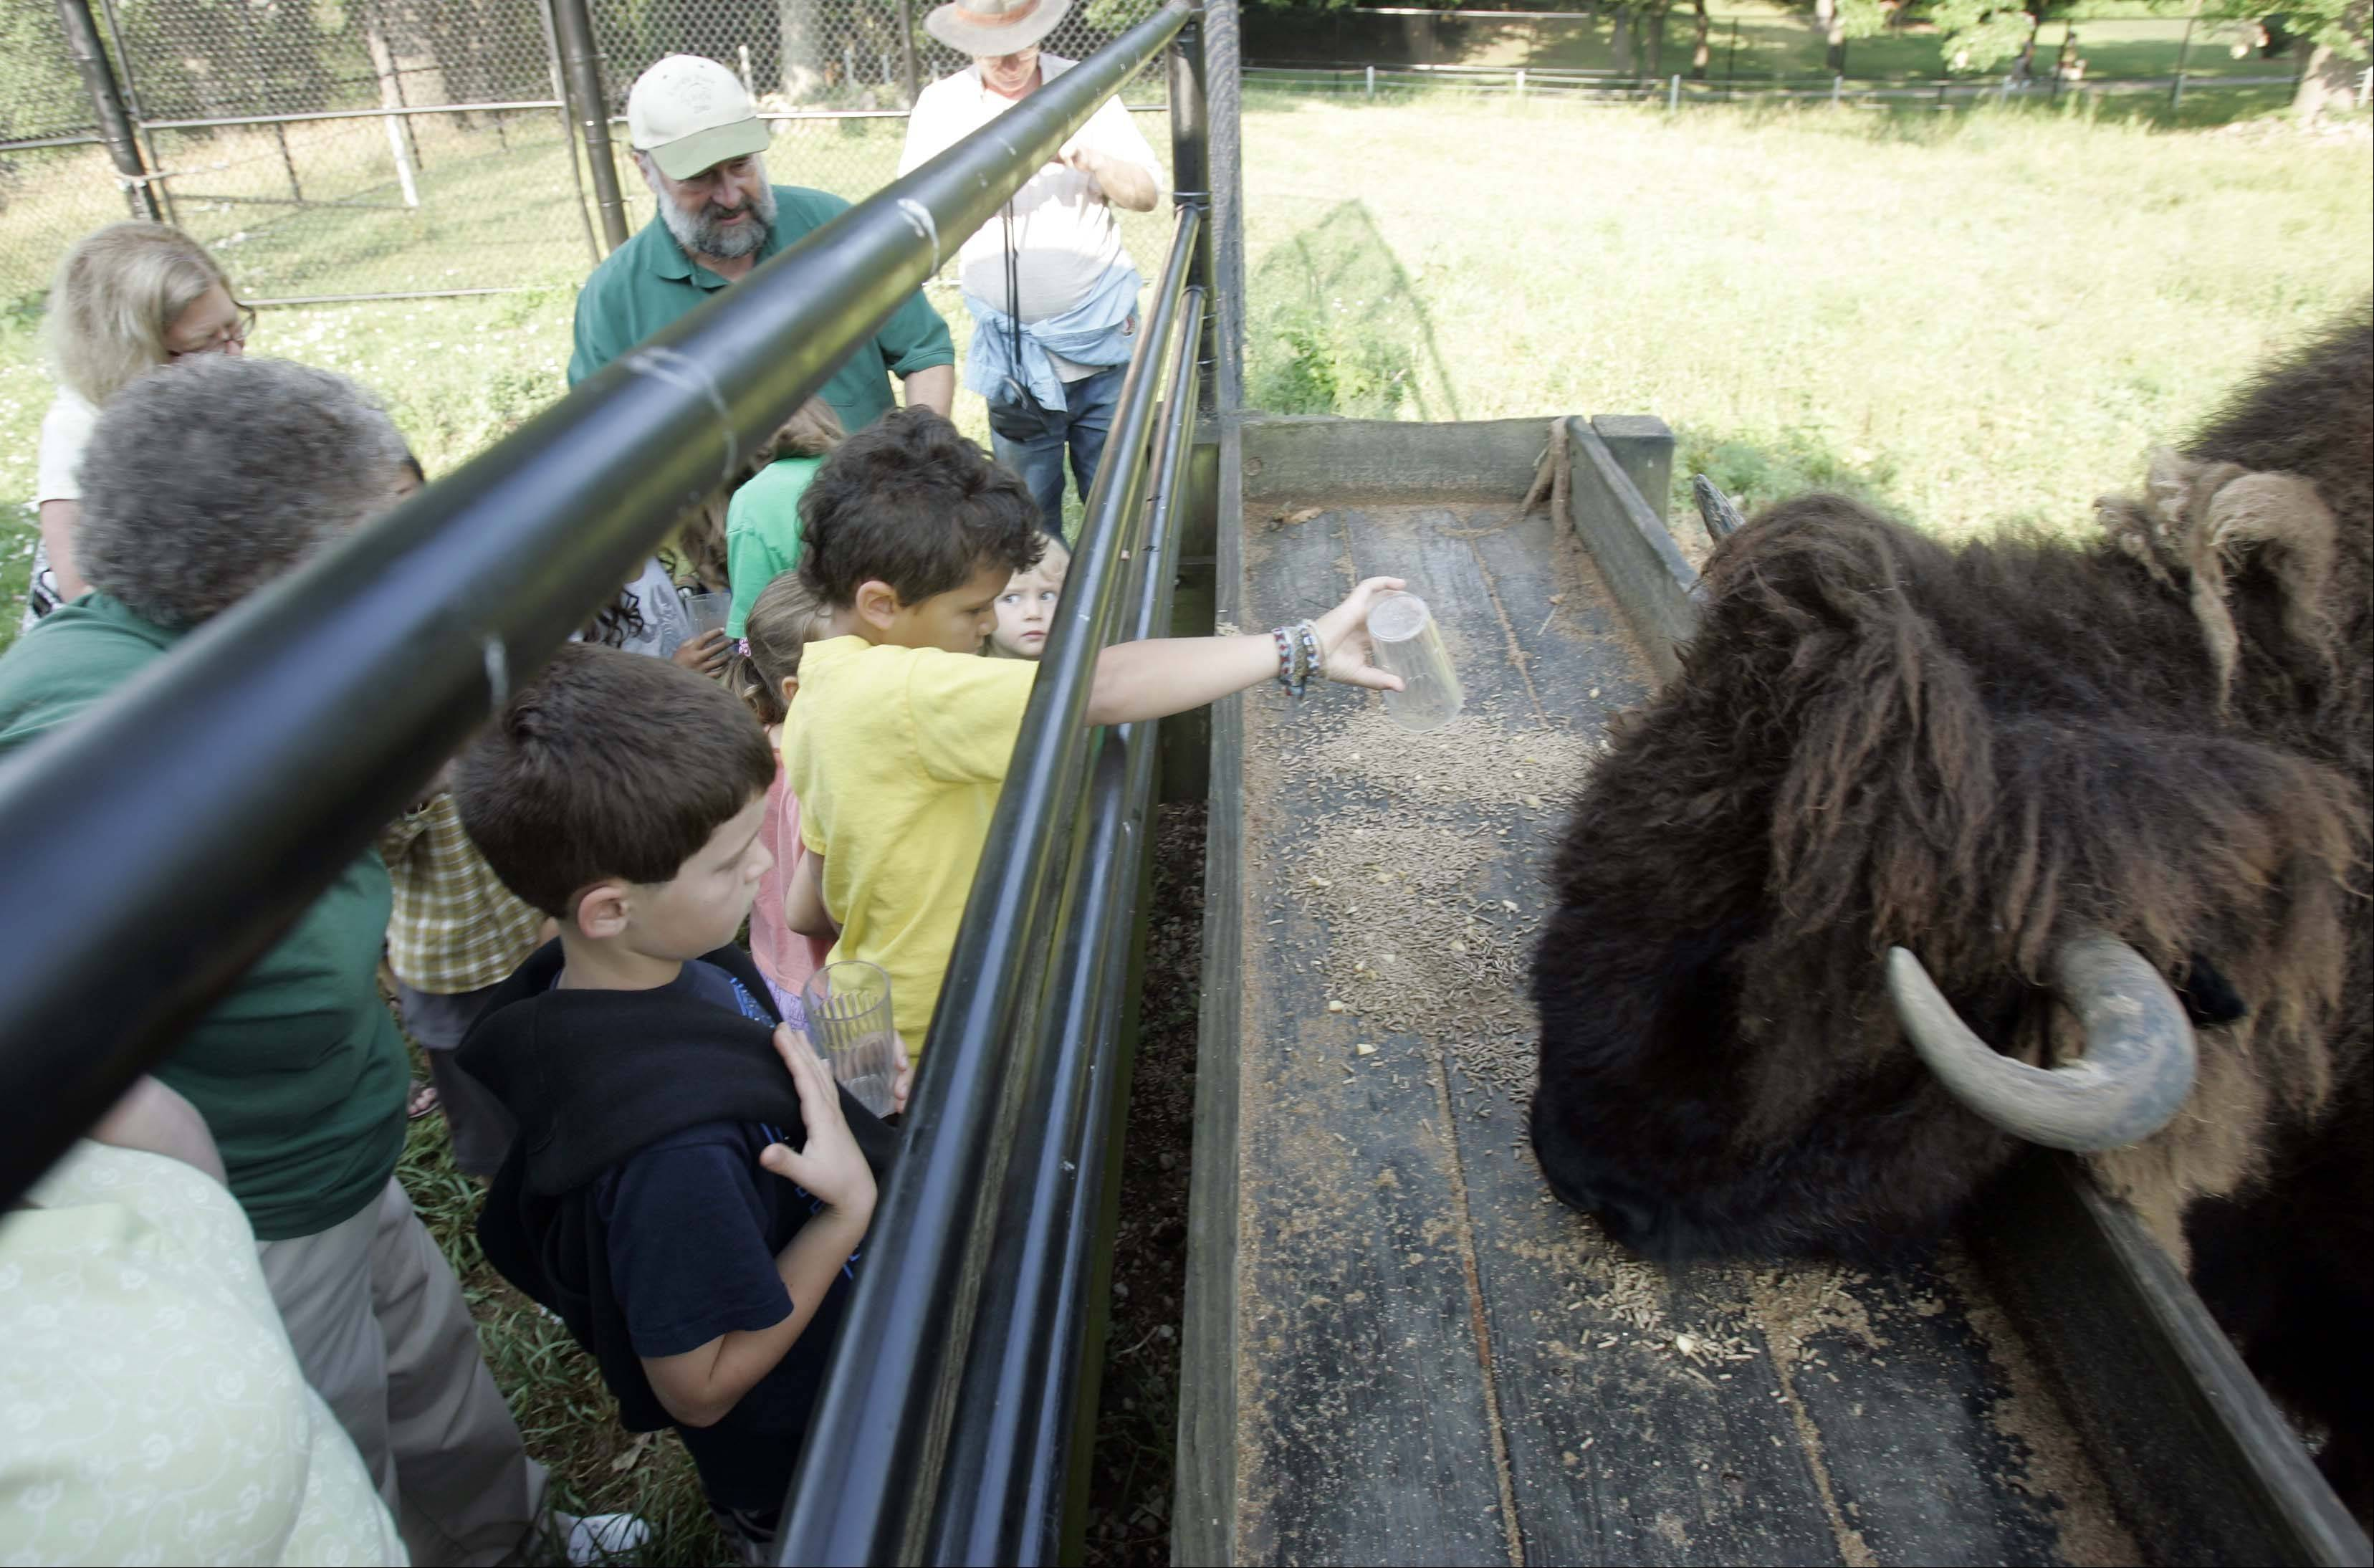 Brian Hill/bhill@dailyherald.com  Five-year-old Eden Long of Elgin dumps his cup of food for Po-Key the bison during feeding last summer at Lords Park Zoo in Elgin. The bison was euthanized Tuesday.